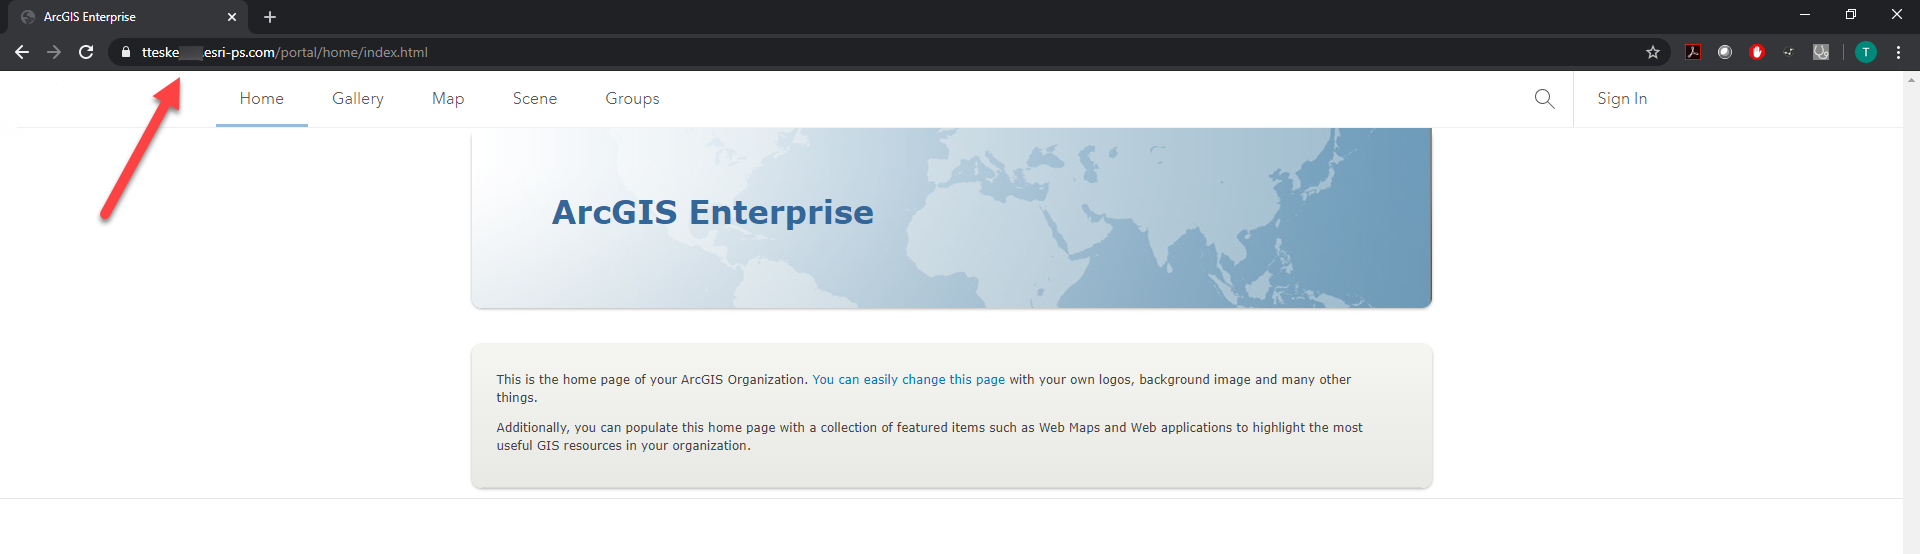 ArcGIS Portal homepage with arrow pointing to URL